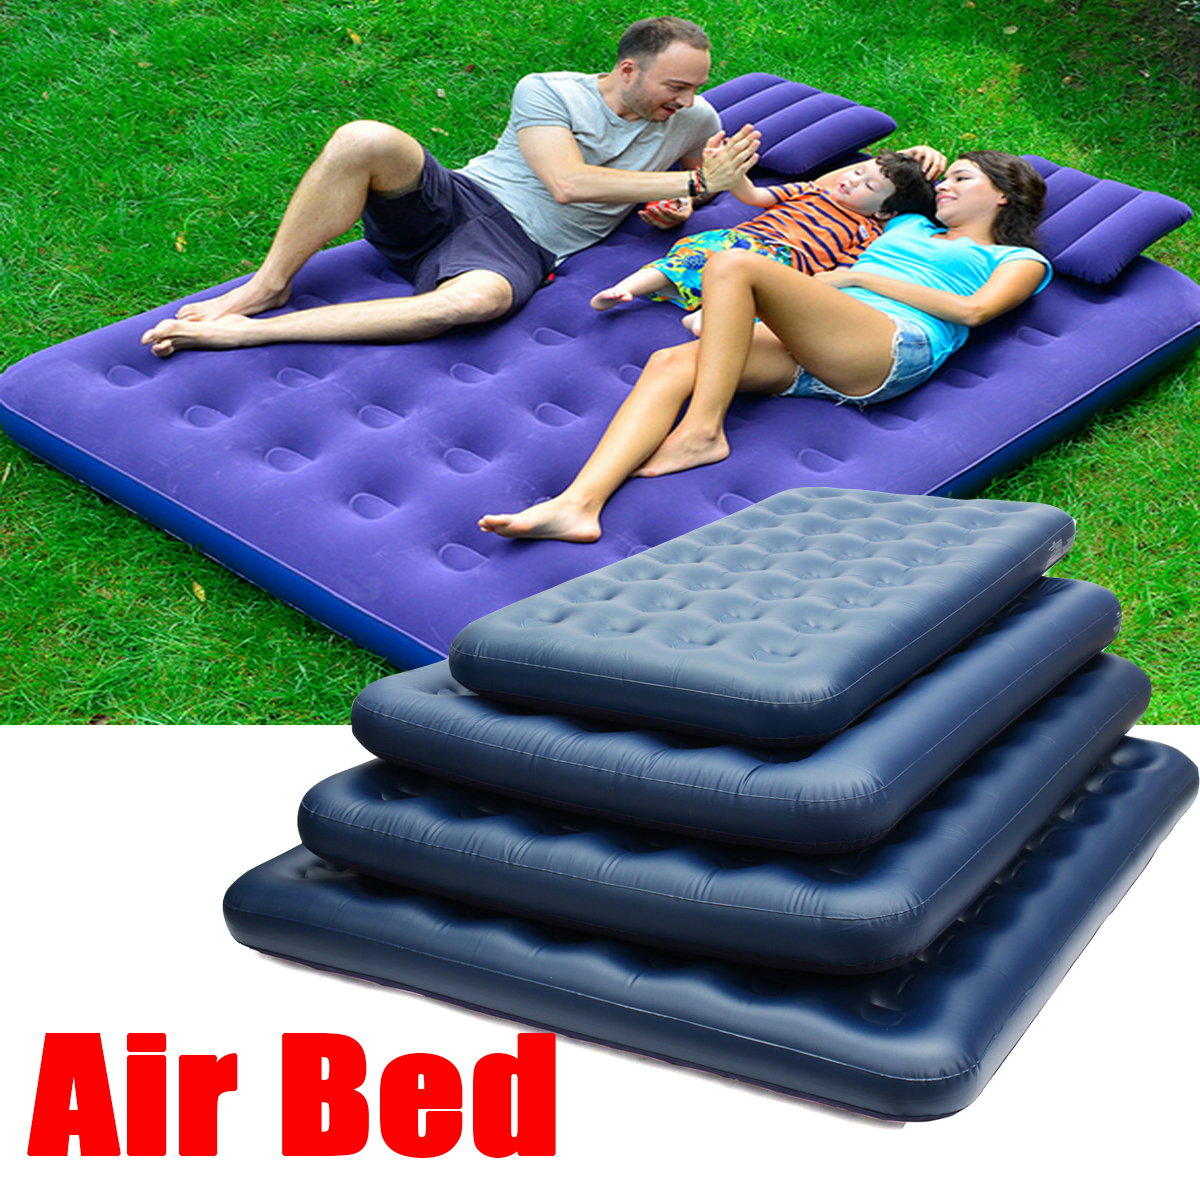 Outdoor Inflatable Air Mattress Full Size Intex Classic Downy Airbed Bed Sleeper